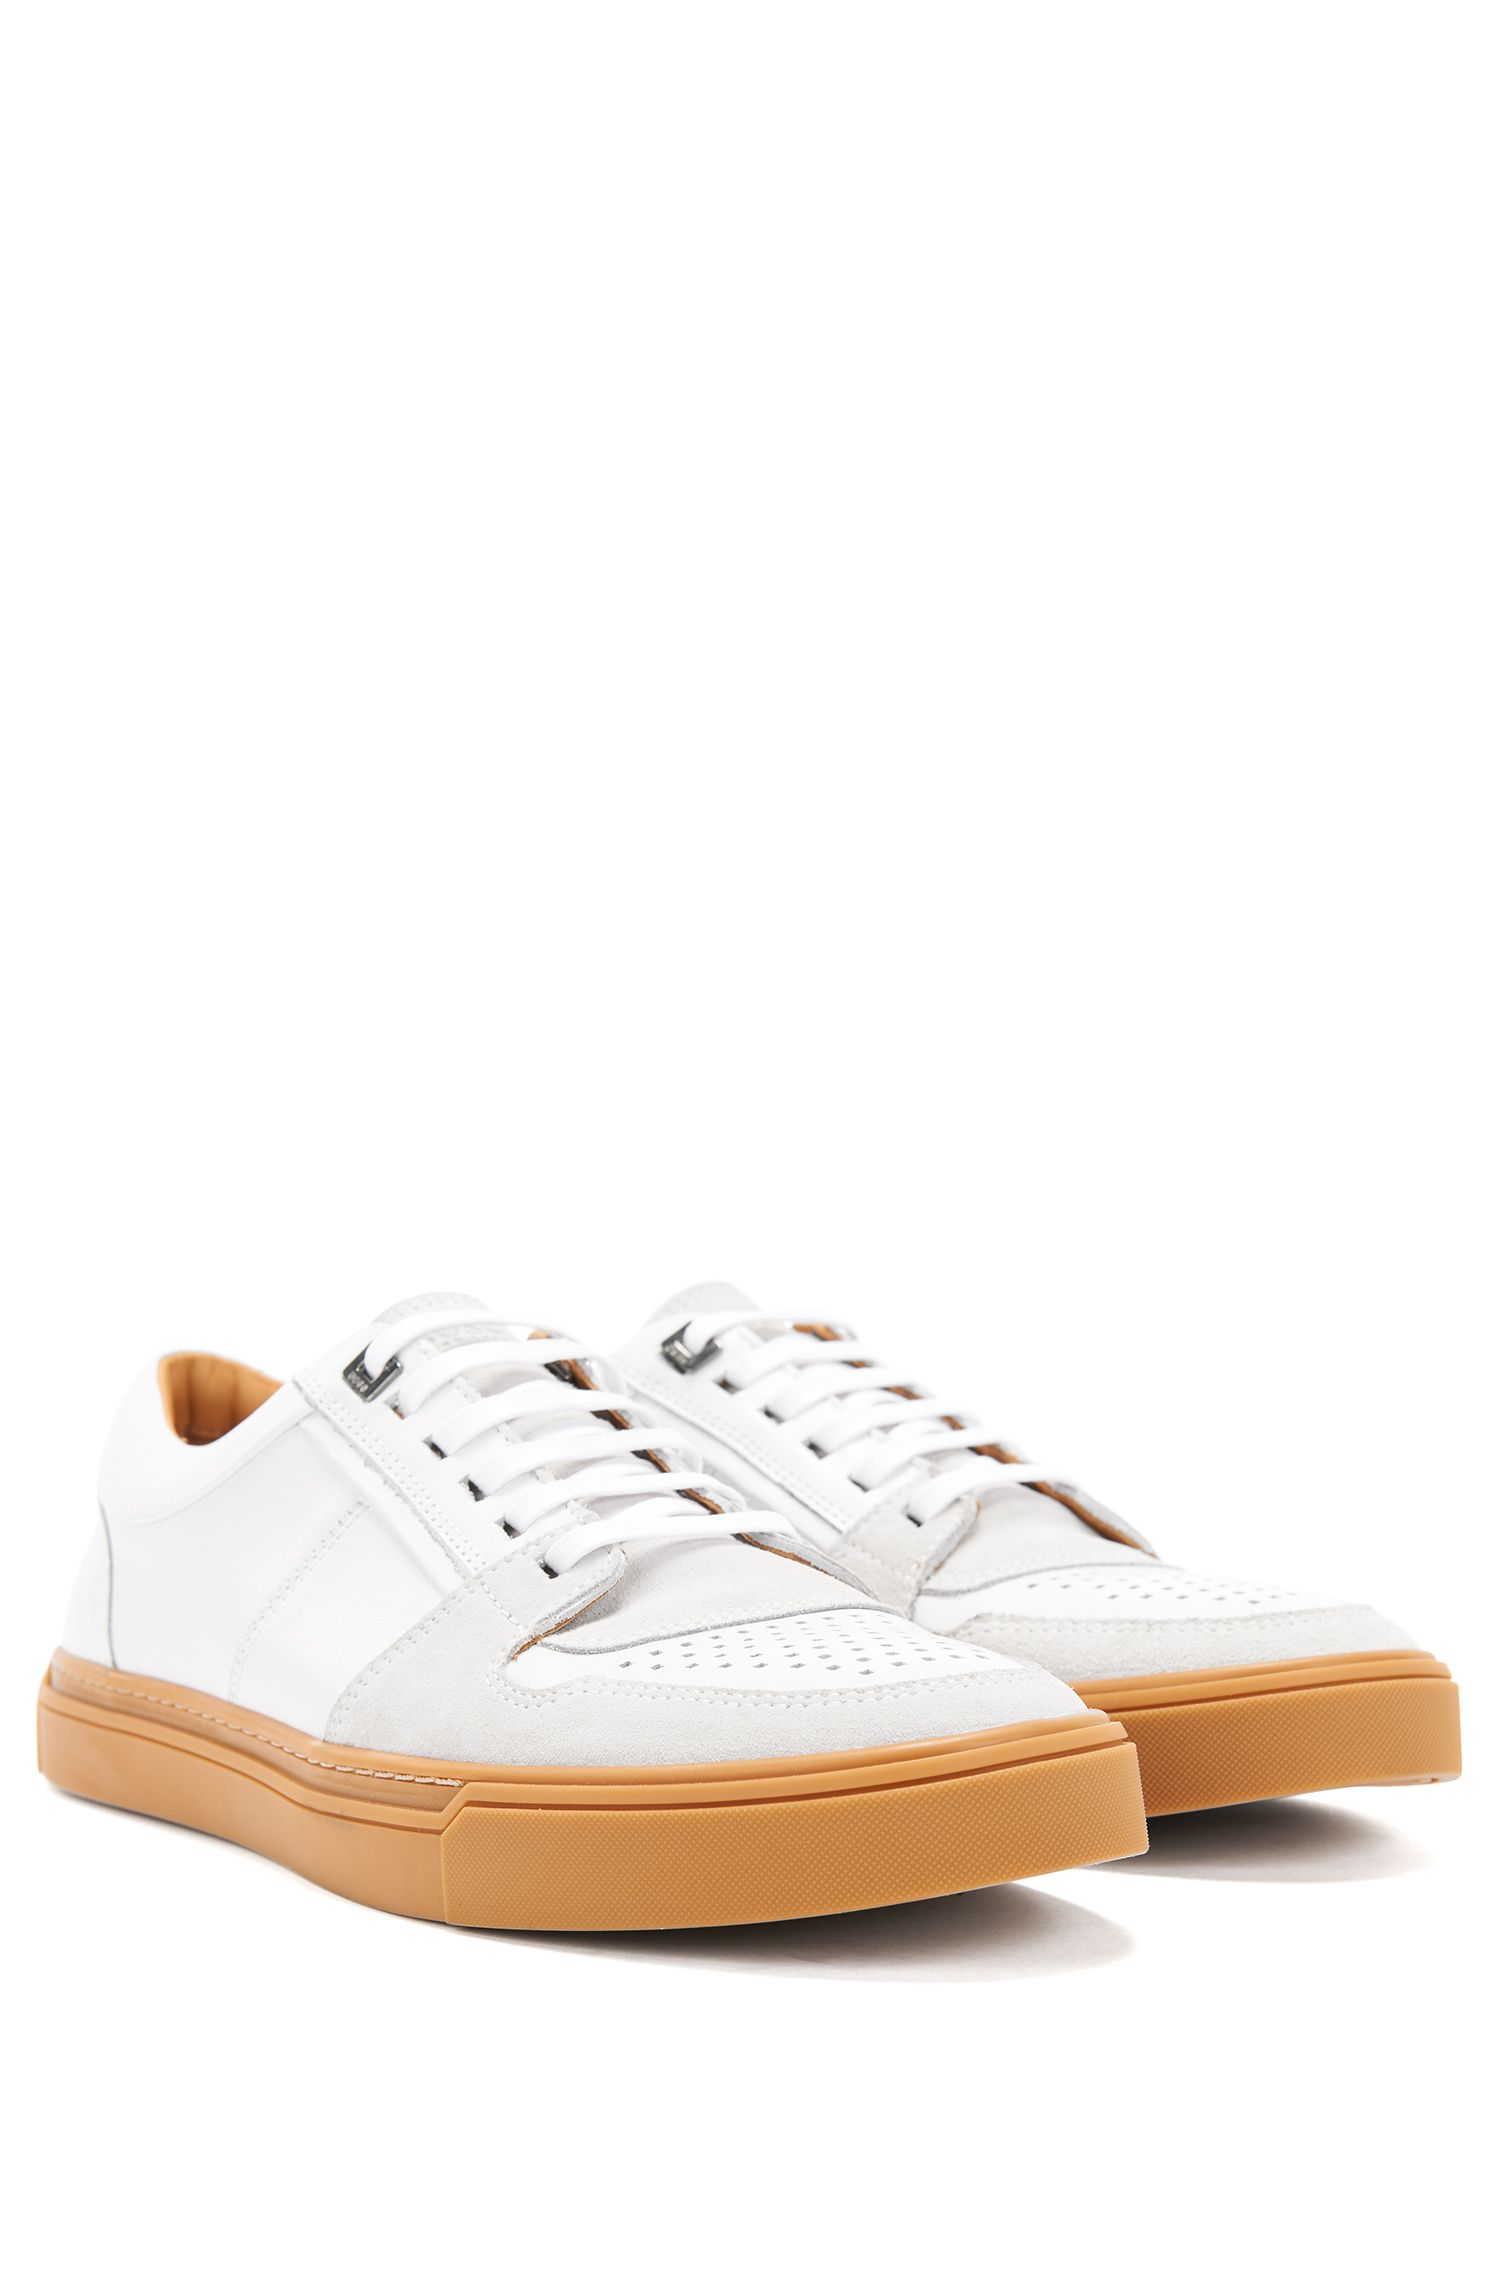 Italian calf-leather trainers with Strobel construction BOSS